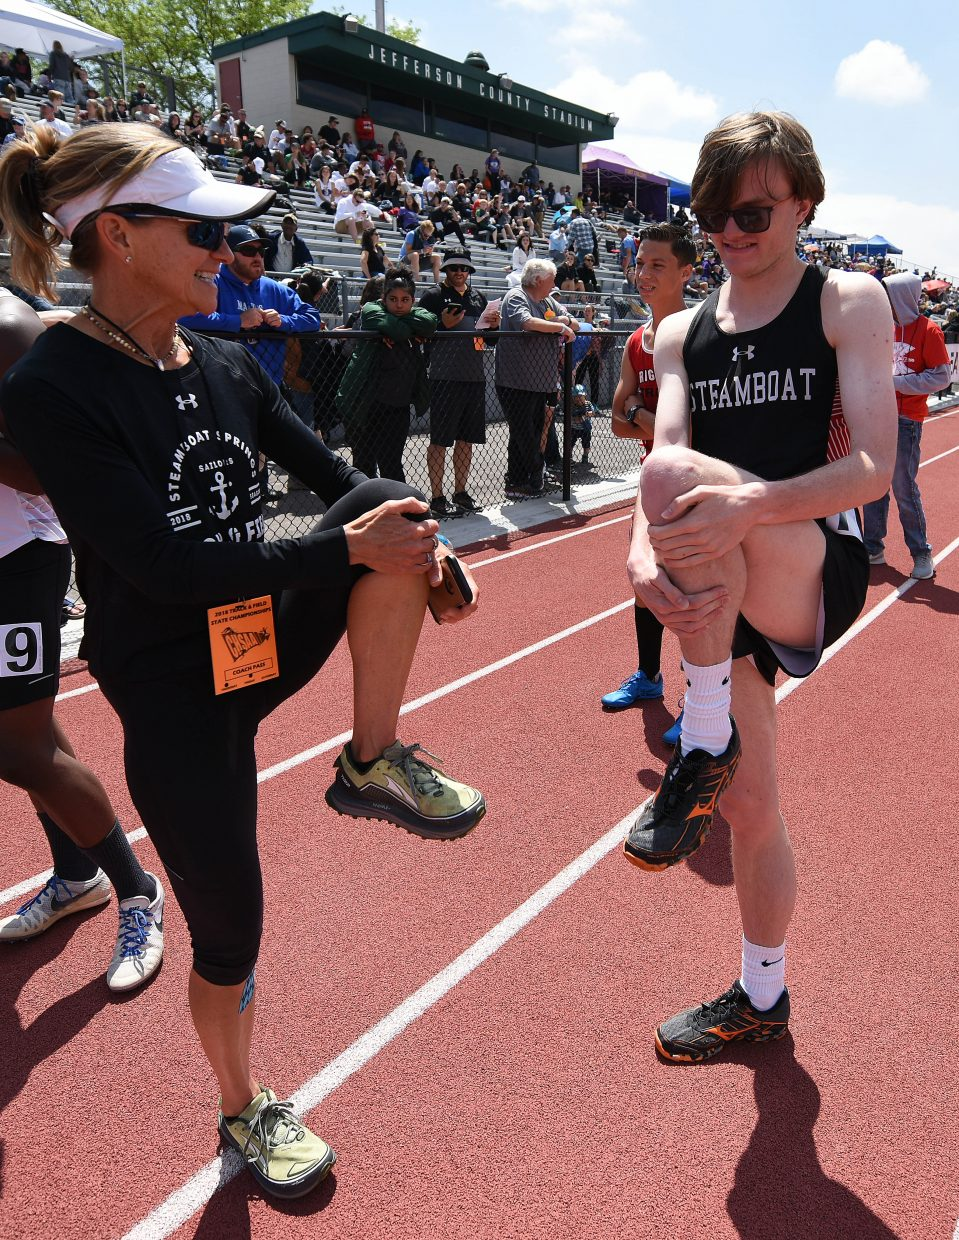 Steamboat coach Lisa Renee Tumminello and Jon Ruhle stretch before Ruhle's Friday race.